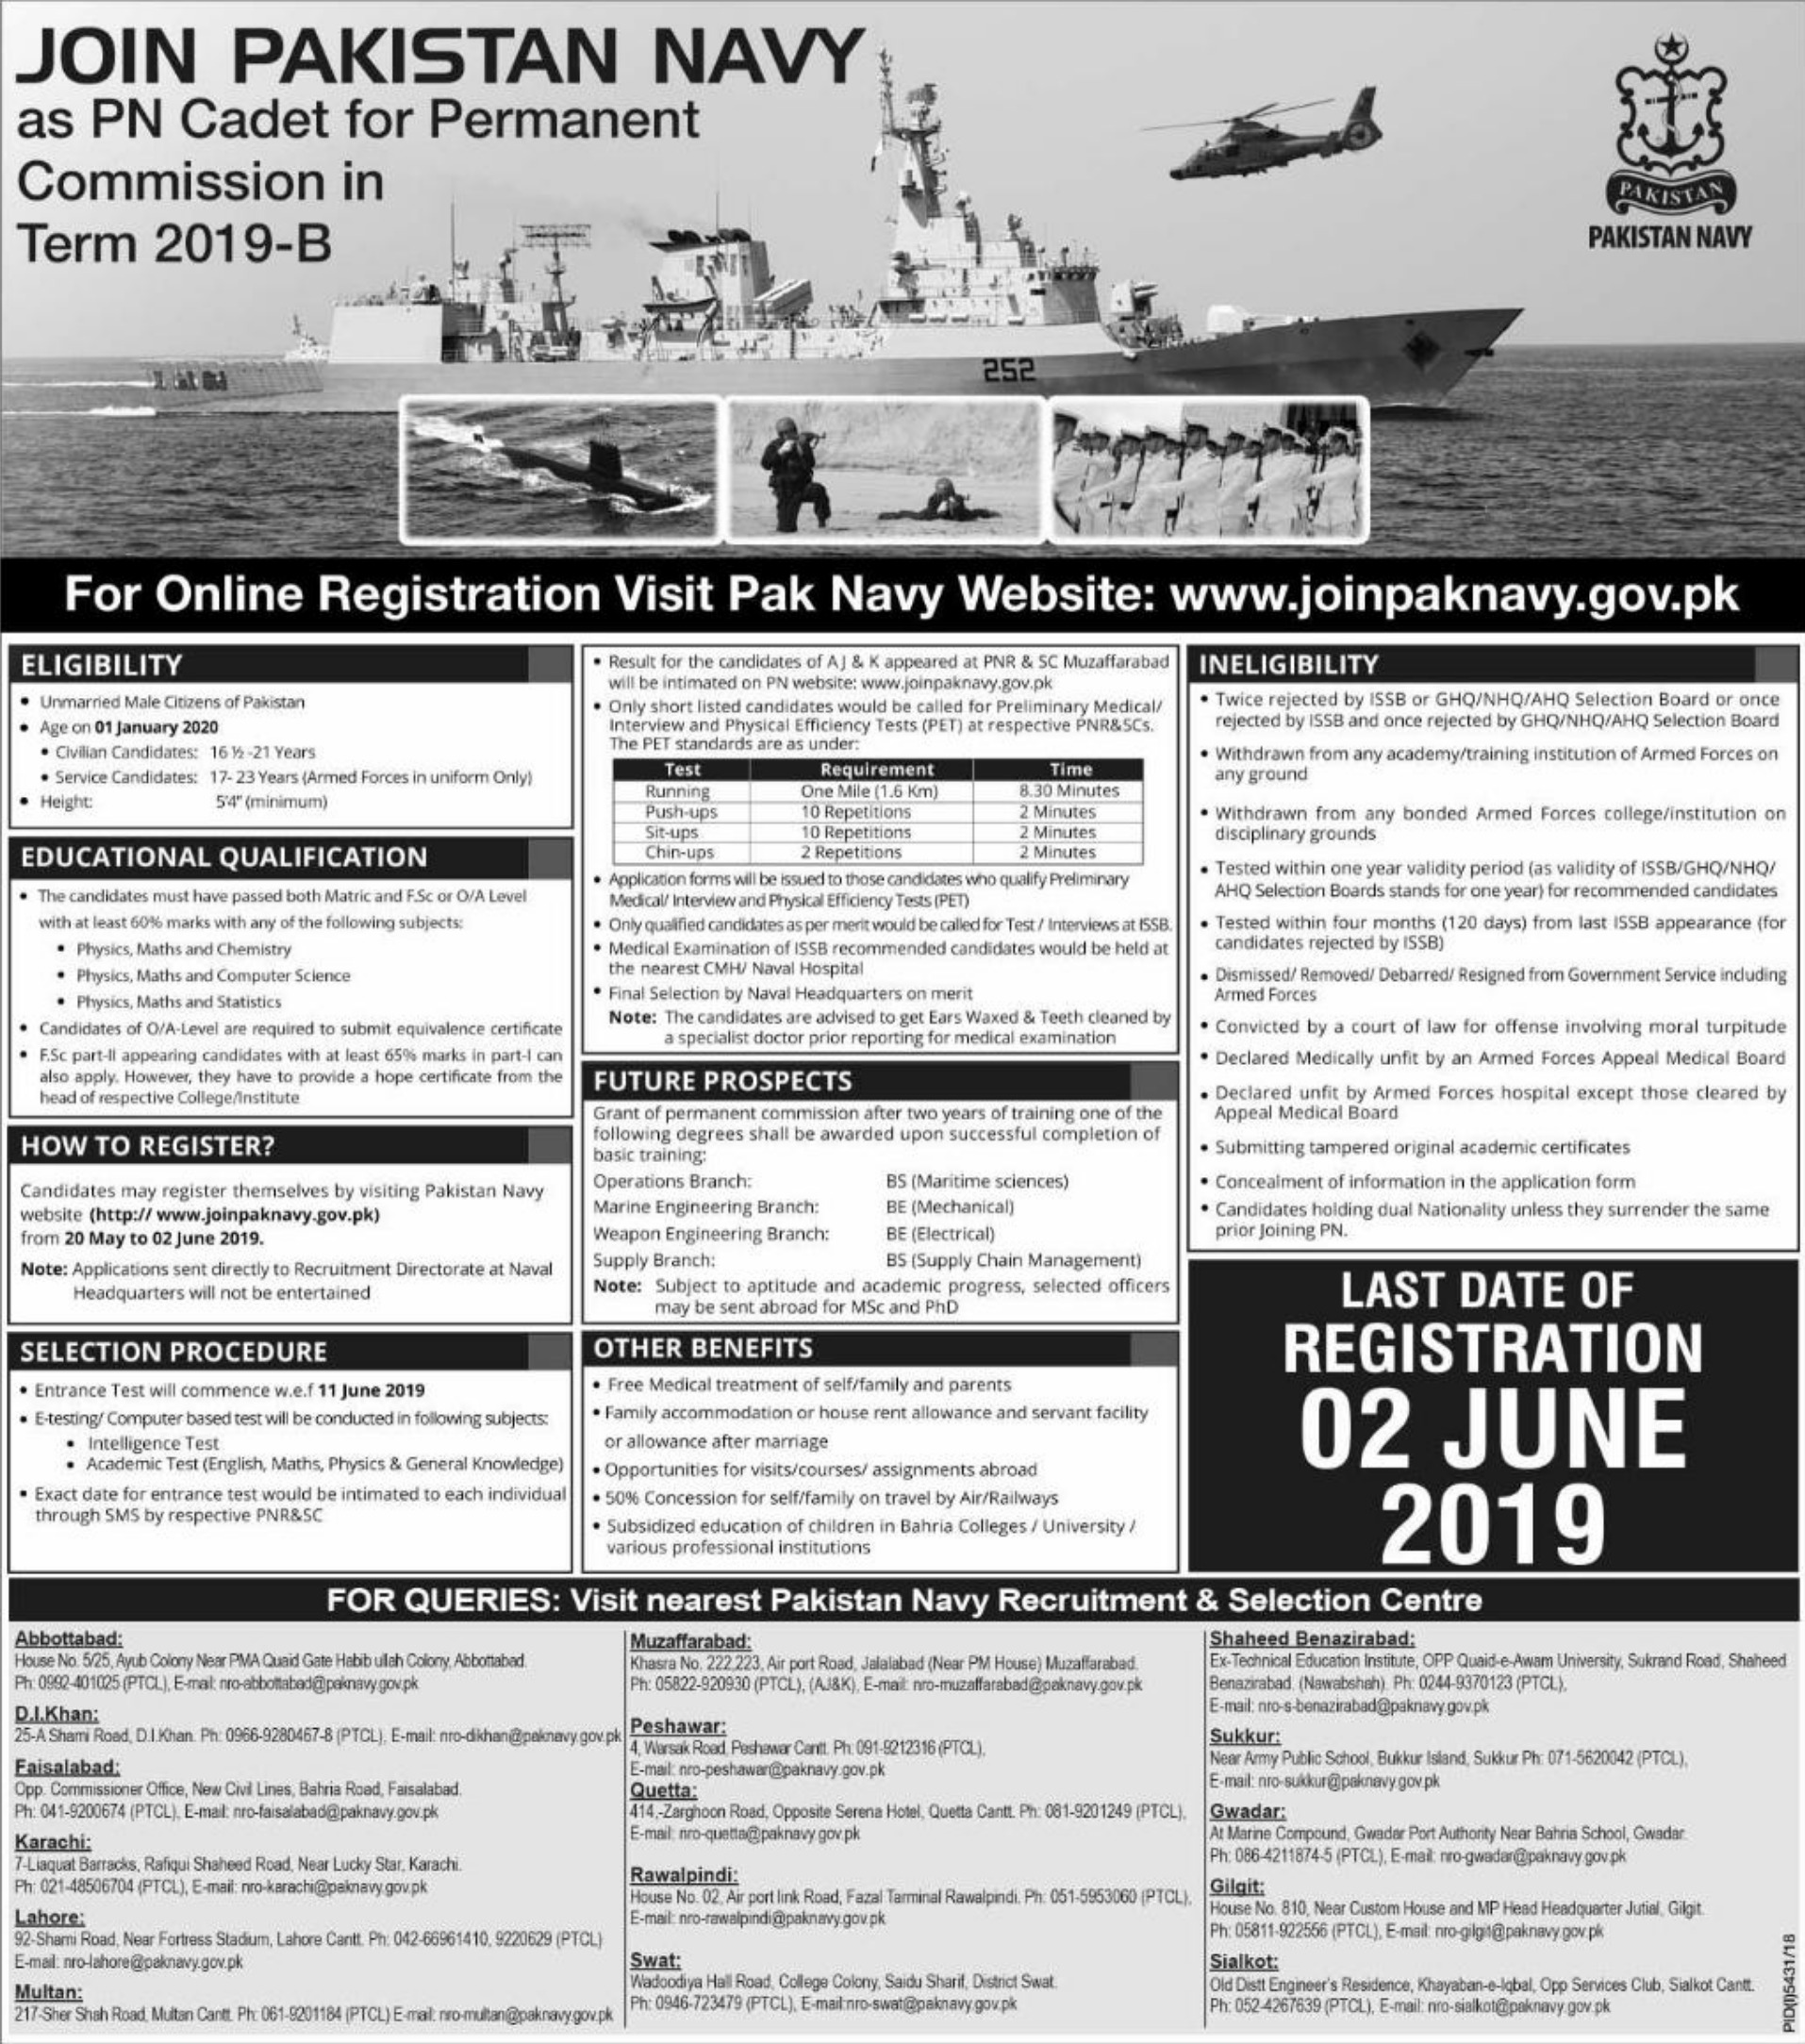 Join Pakistan Navy as PN Cadet for Permanent Commission in Term 2019-B